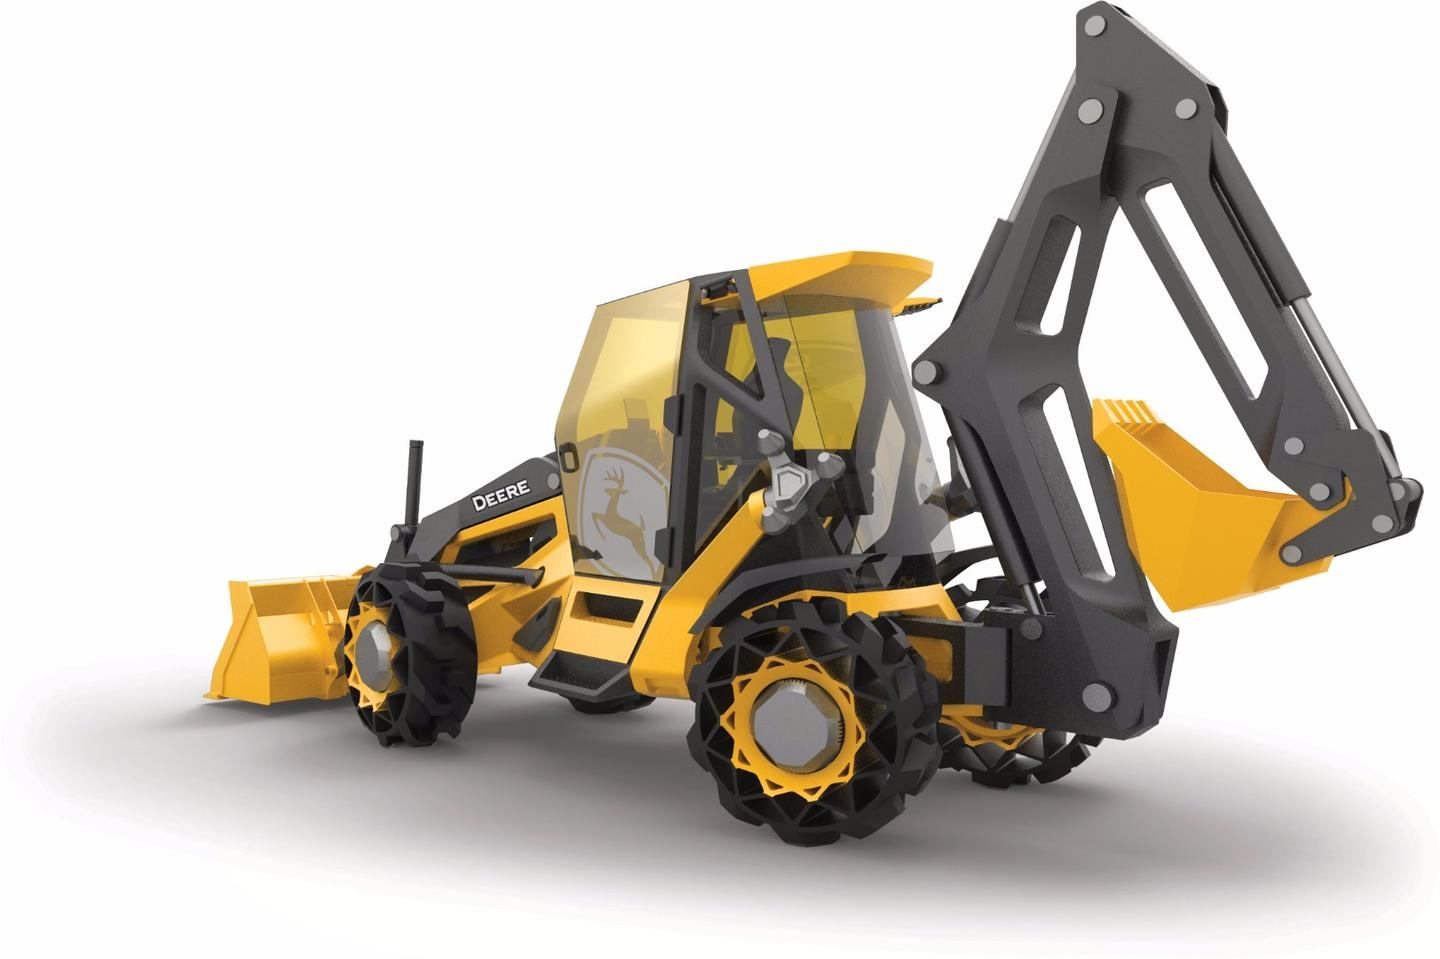 The Designworks concept backhoe is designed for a 20 oercent weight savings